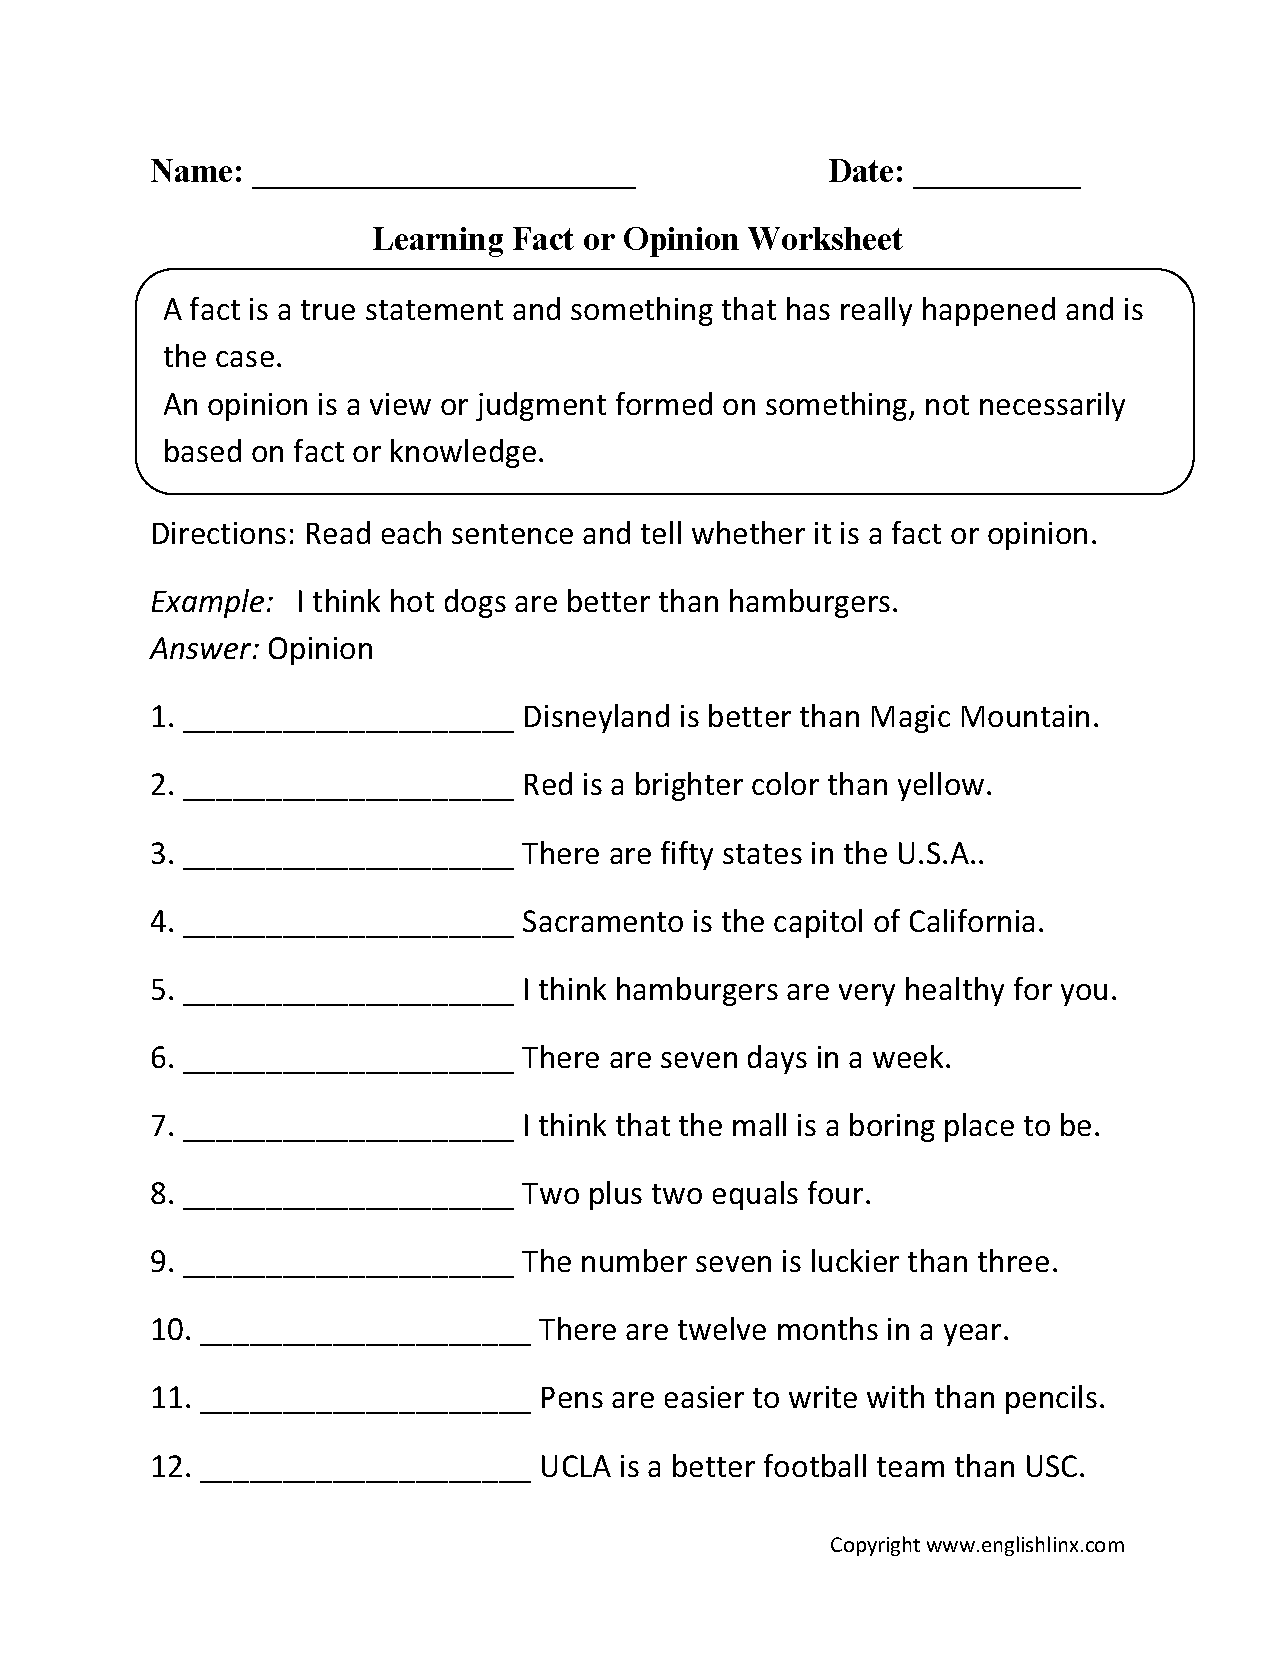 Learning Fact Or Opinion Worksheets